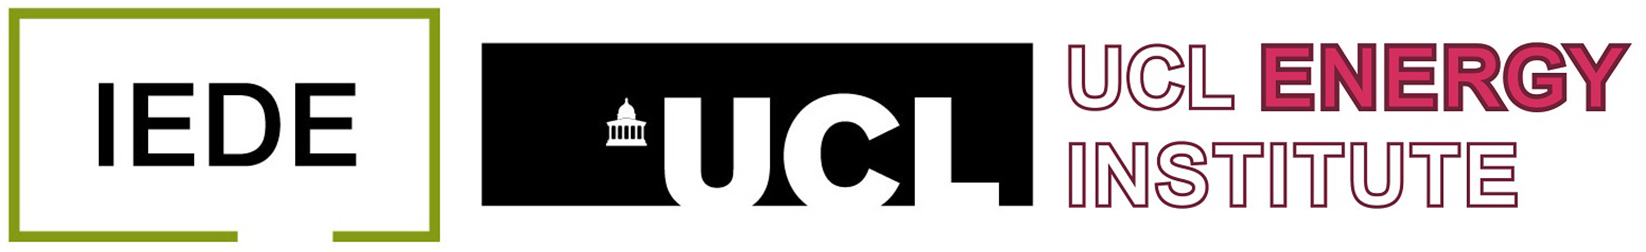 IEDE & UCL-Energy Logo